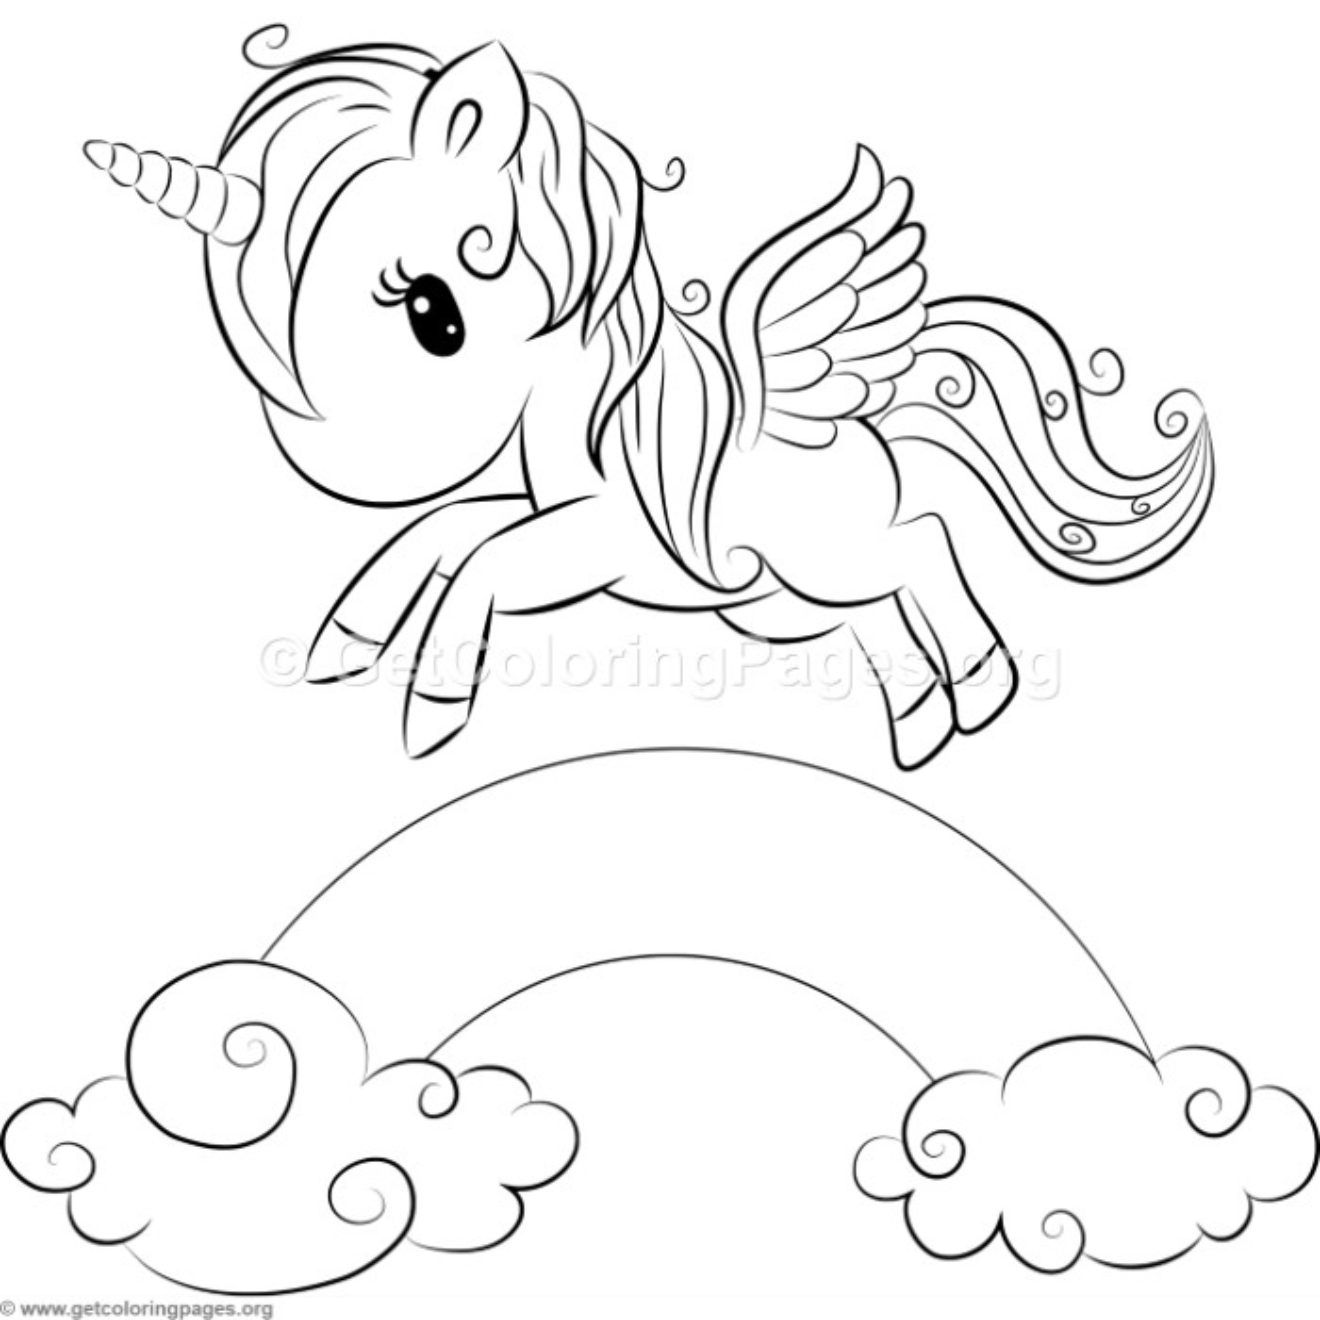 Cute Unicorn 7 Coloring Pages Getcoloringpages Org Unicorn